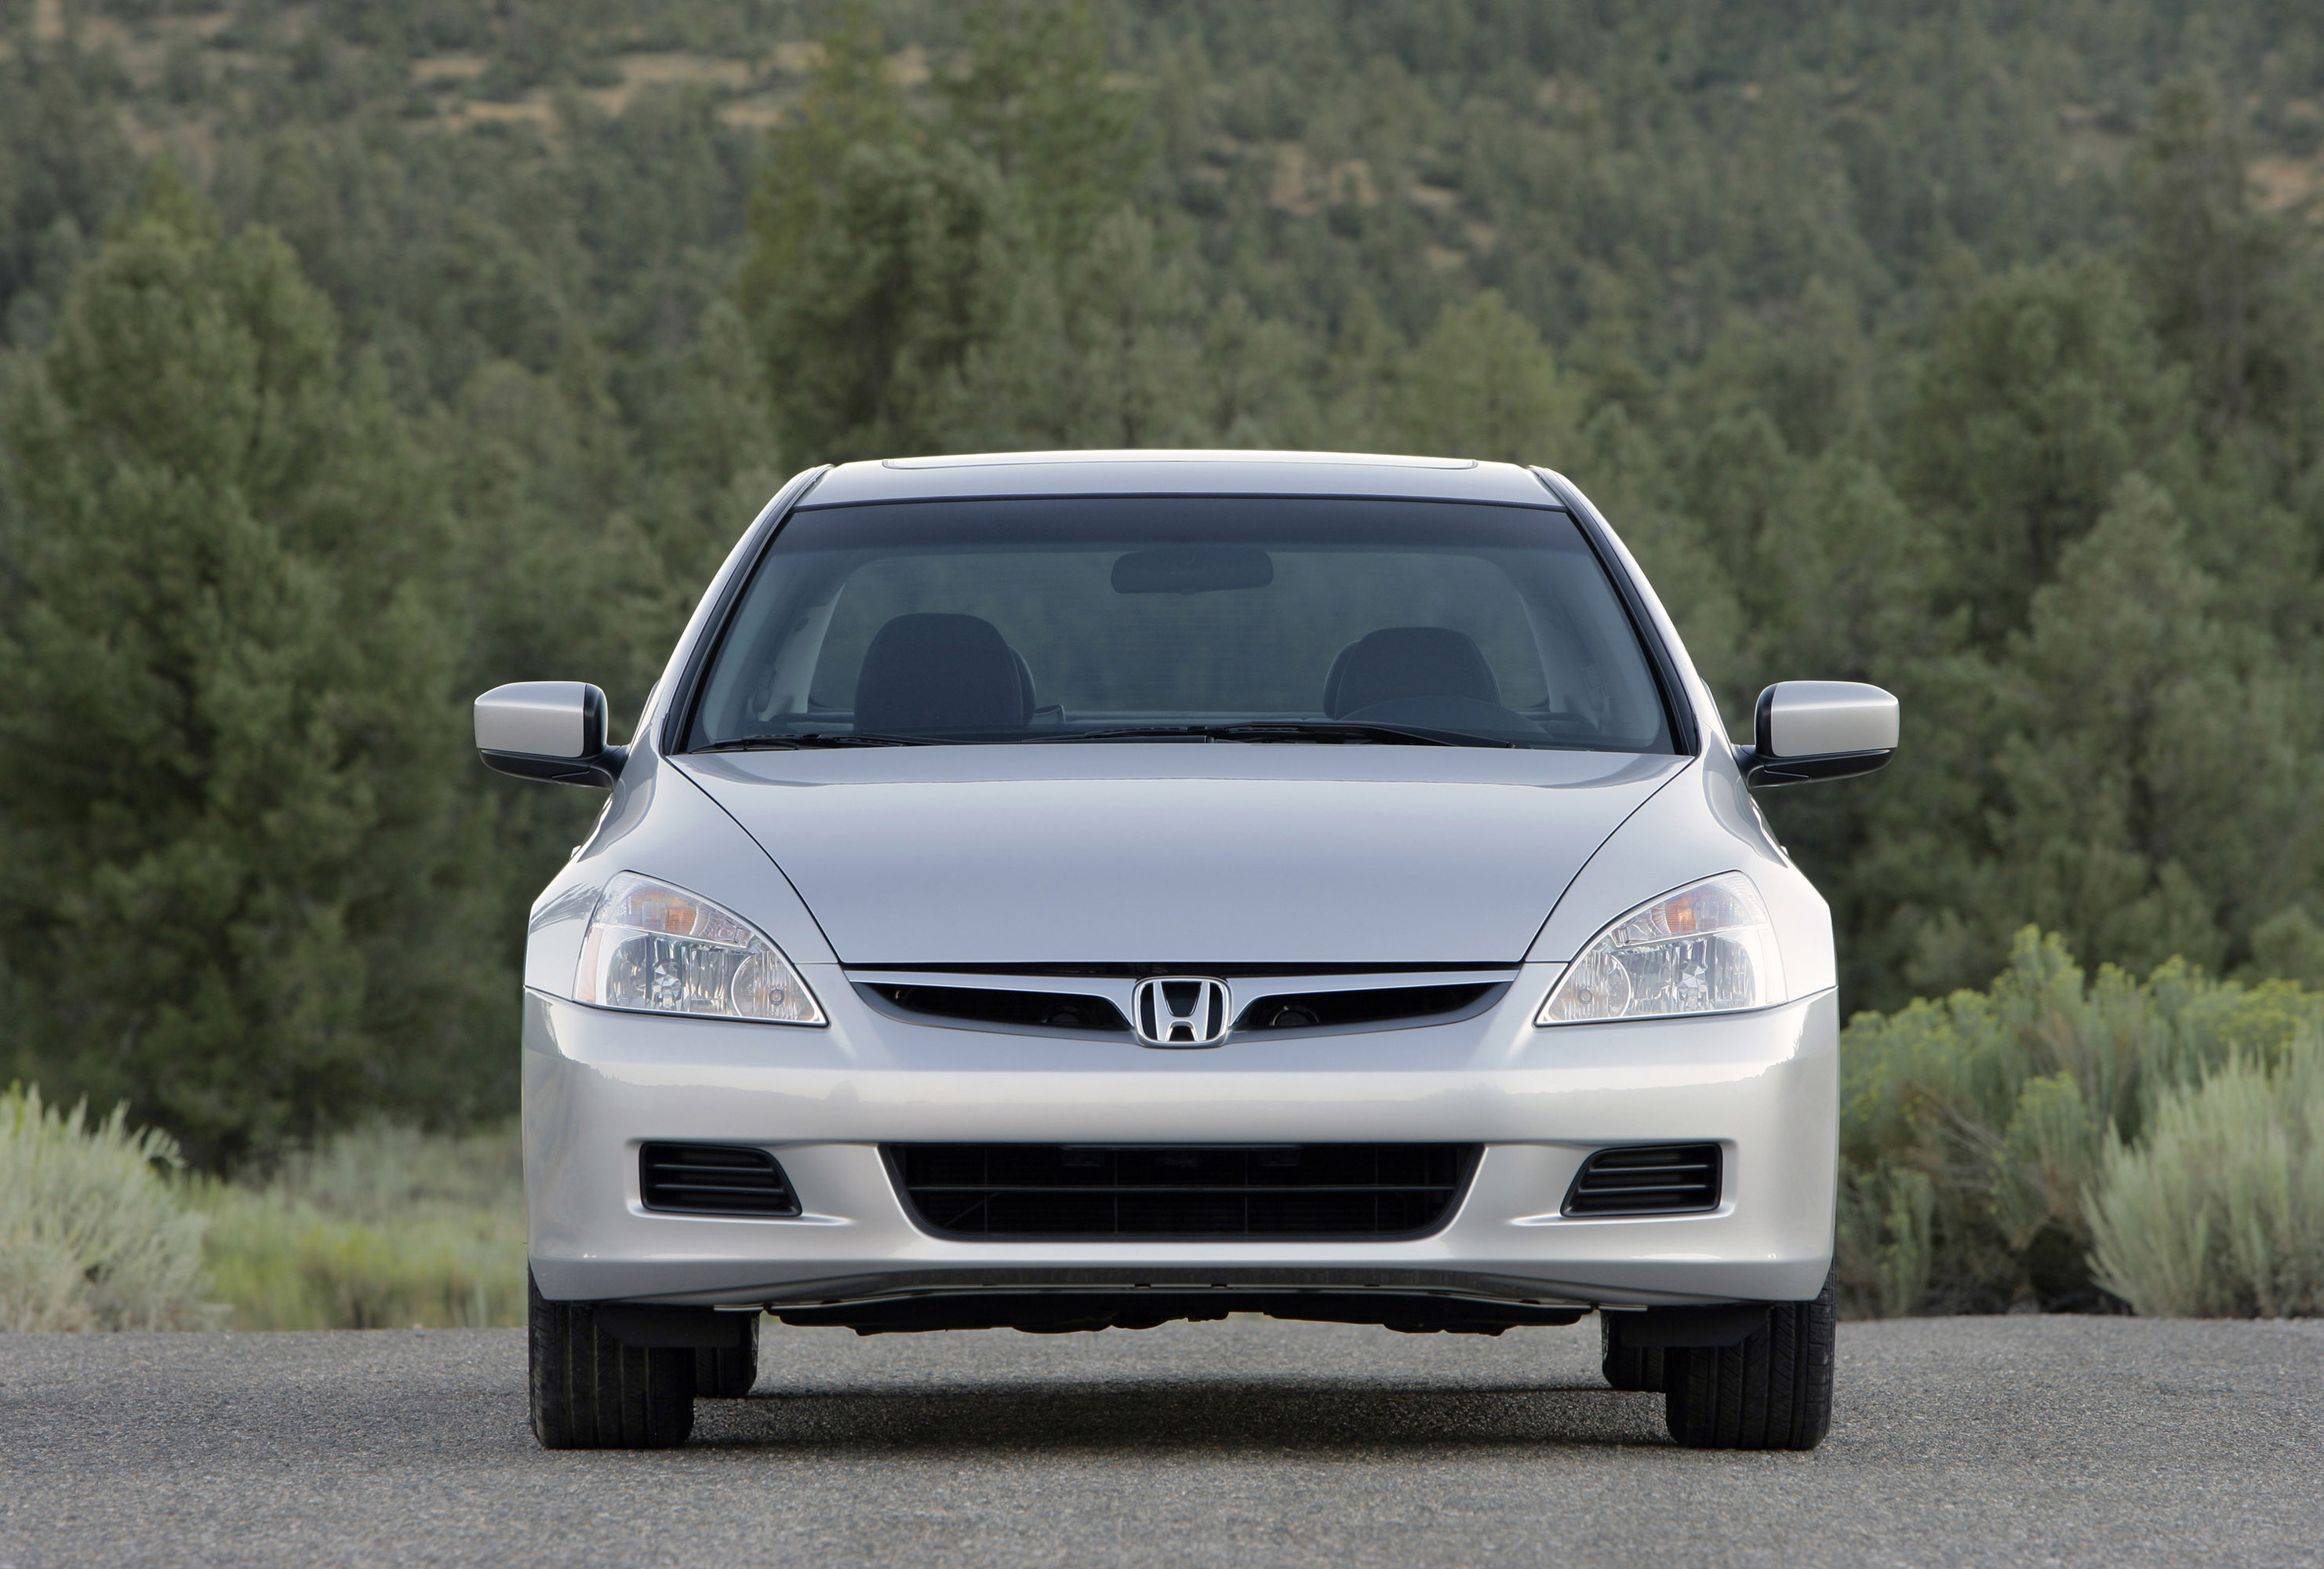 2007 honda accord sedan ex l hd pictures. Black Bedroom Furniture Sets. Home Design Ideas